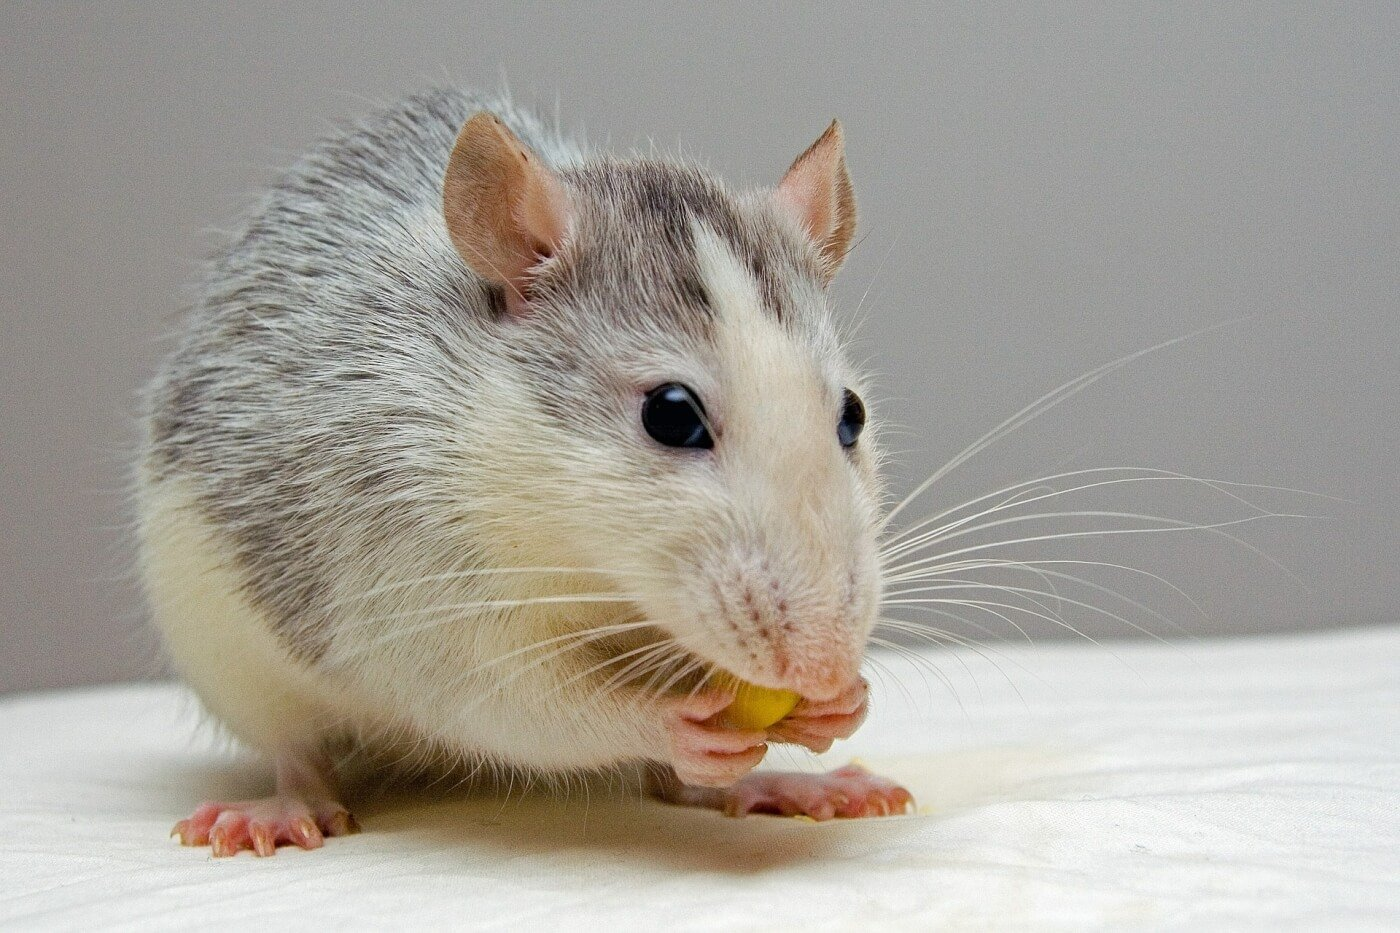 PETA Gets Food Giant General Mills to End Animal Experiments